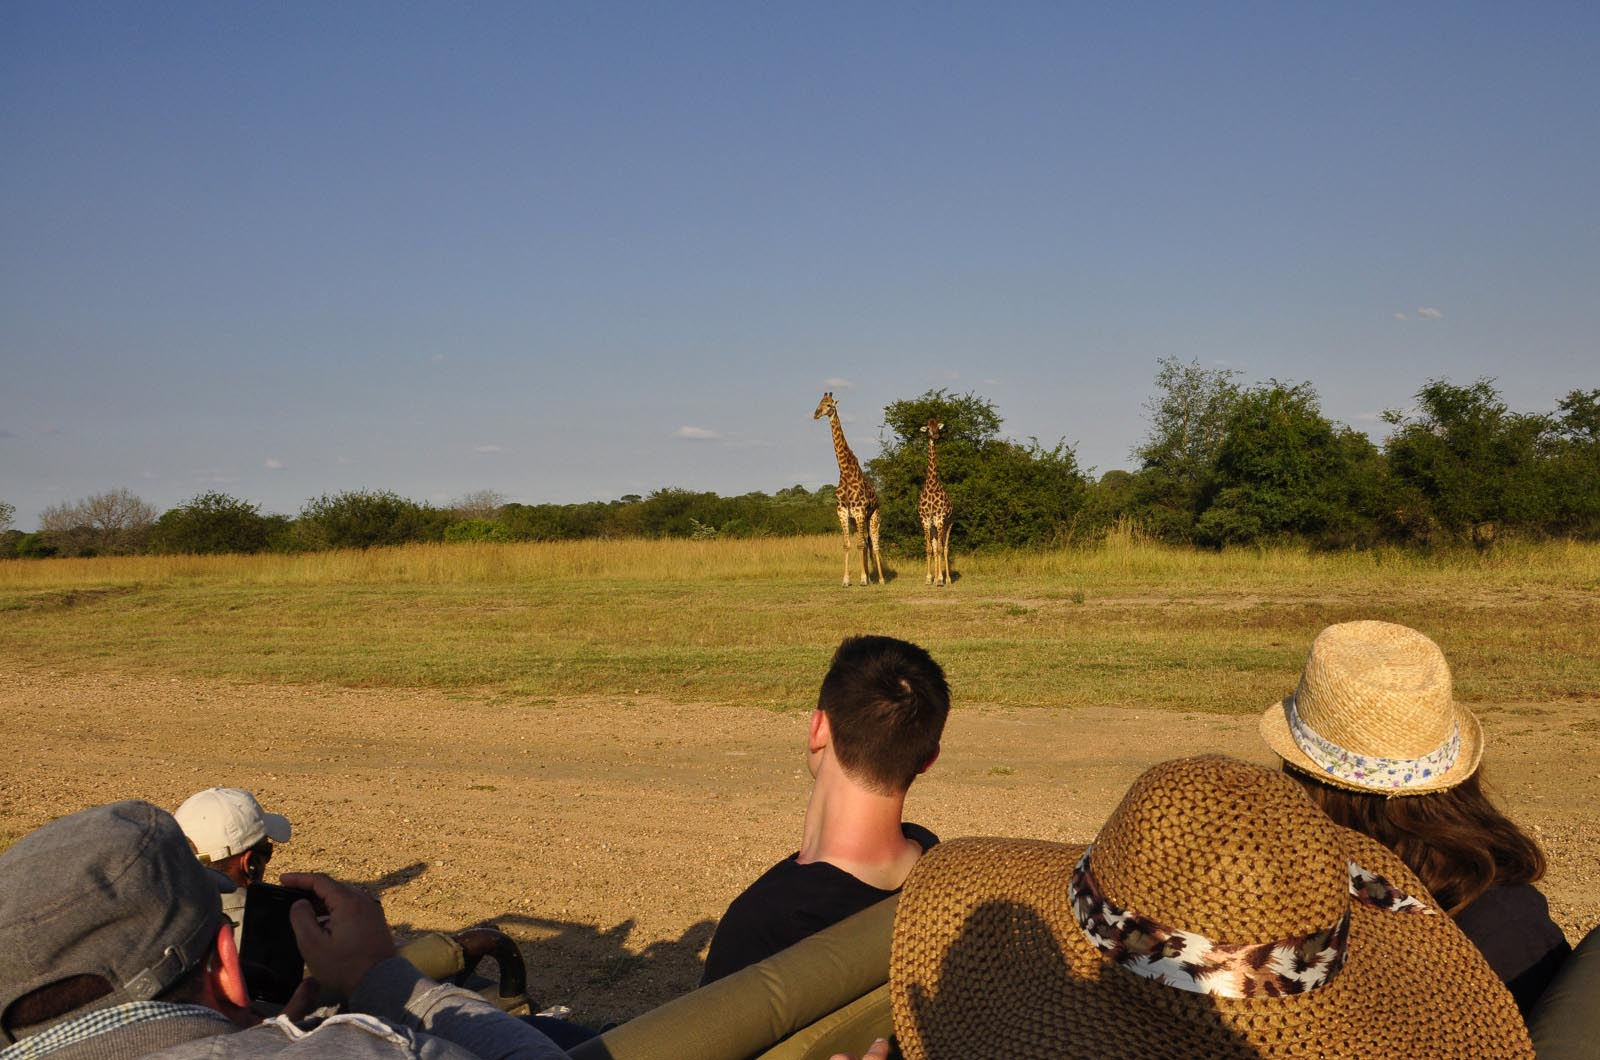 chikunto-lodge-zambia-in-style-safari-packages-lodges-luxury-tents-south-luangwa-location-game-giraffe